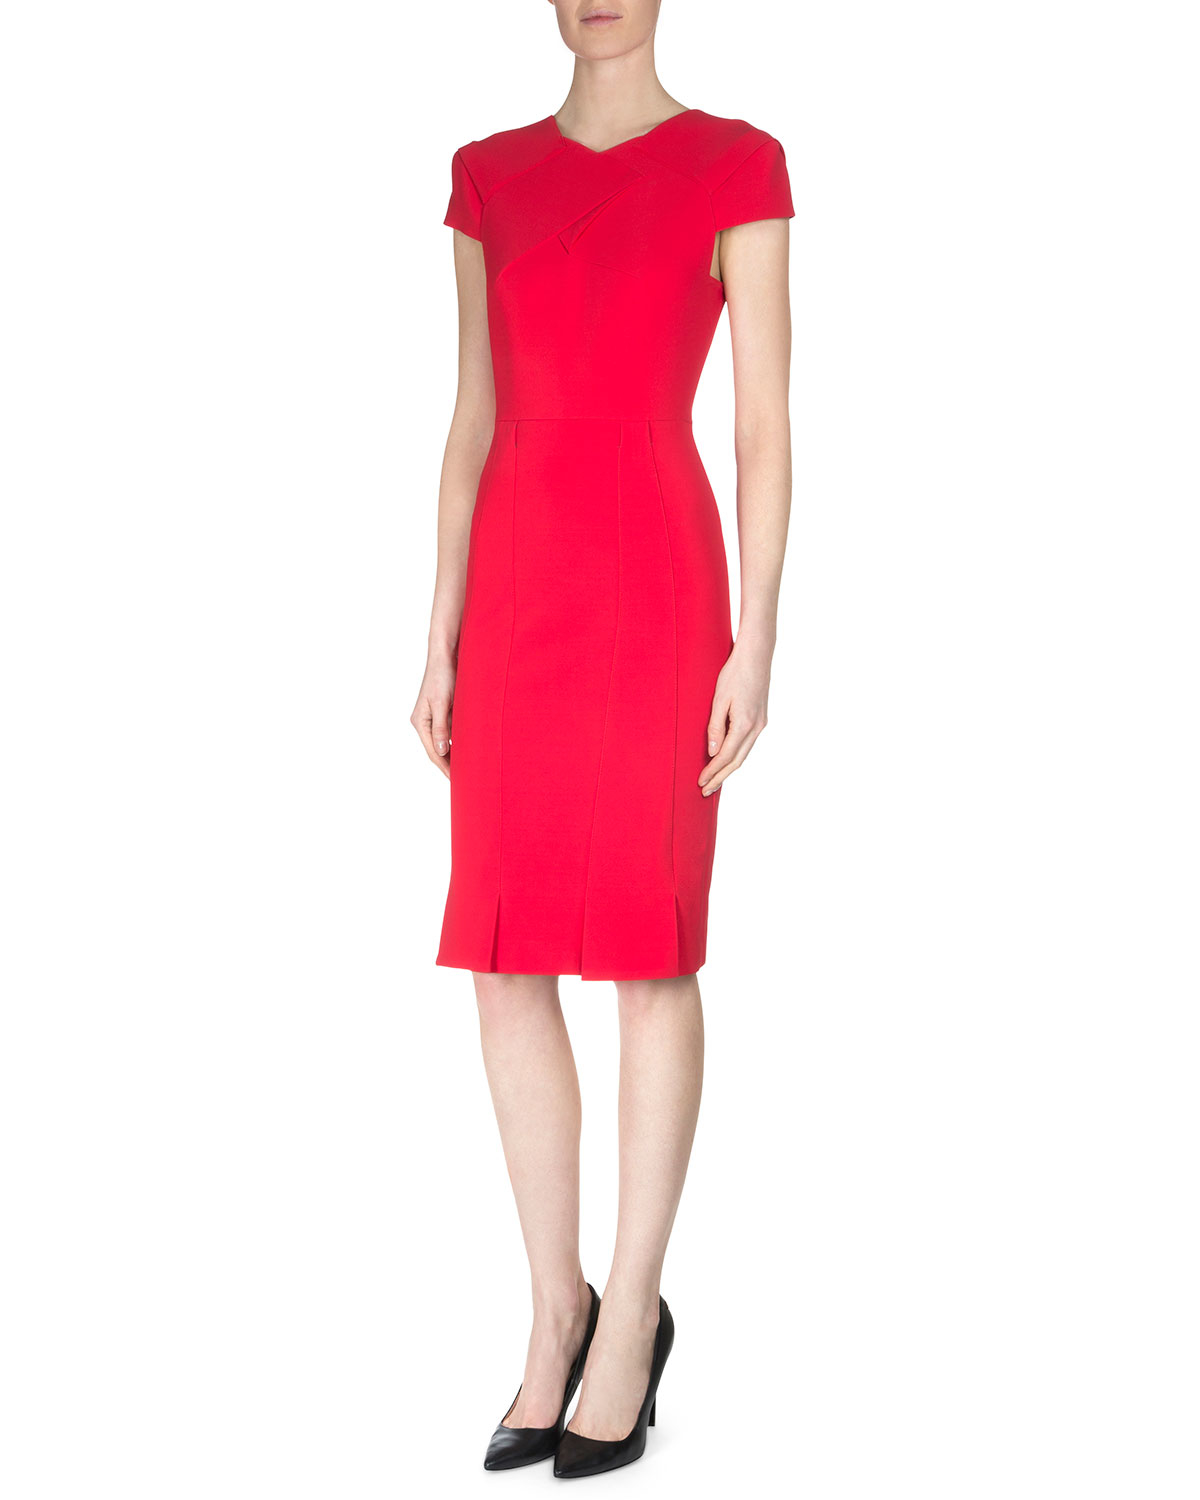 Red Sheath Dress Pictures to pin on Pinterest